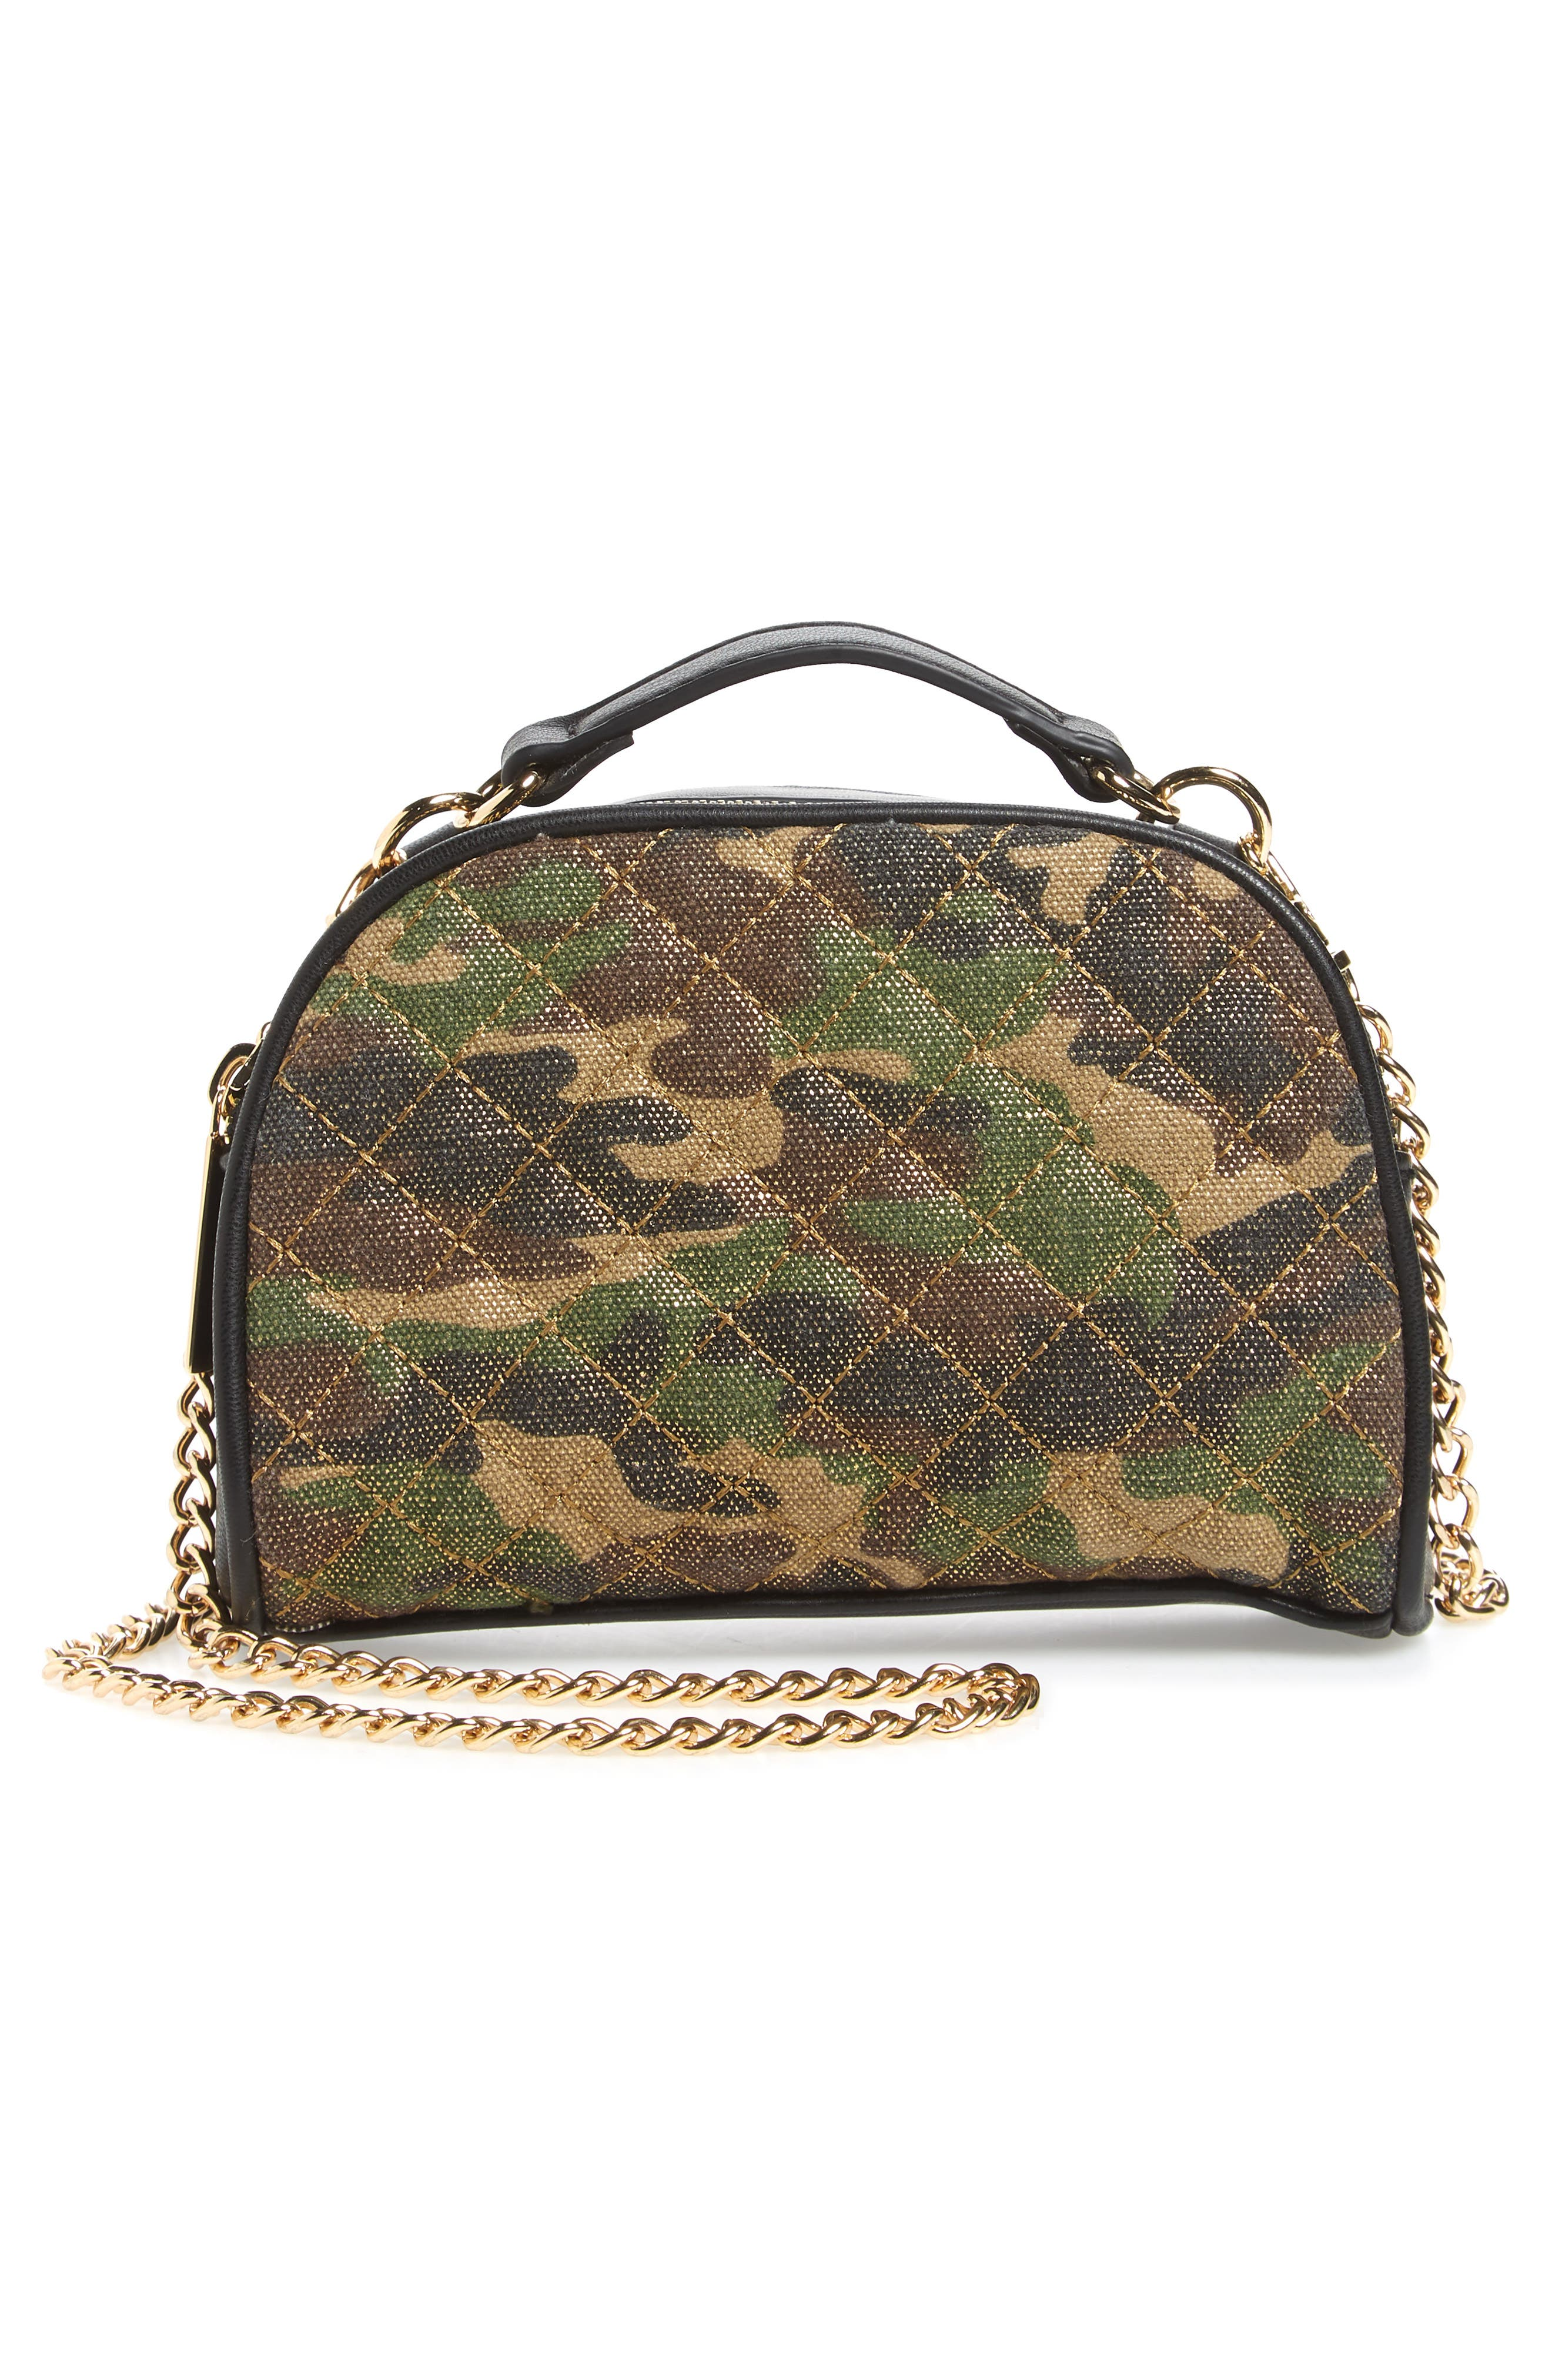 Mali + Lili Quilted Camouflage Belt Bag,                             Alternate thumbnail 4, color,                             340